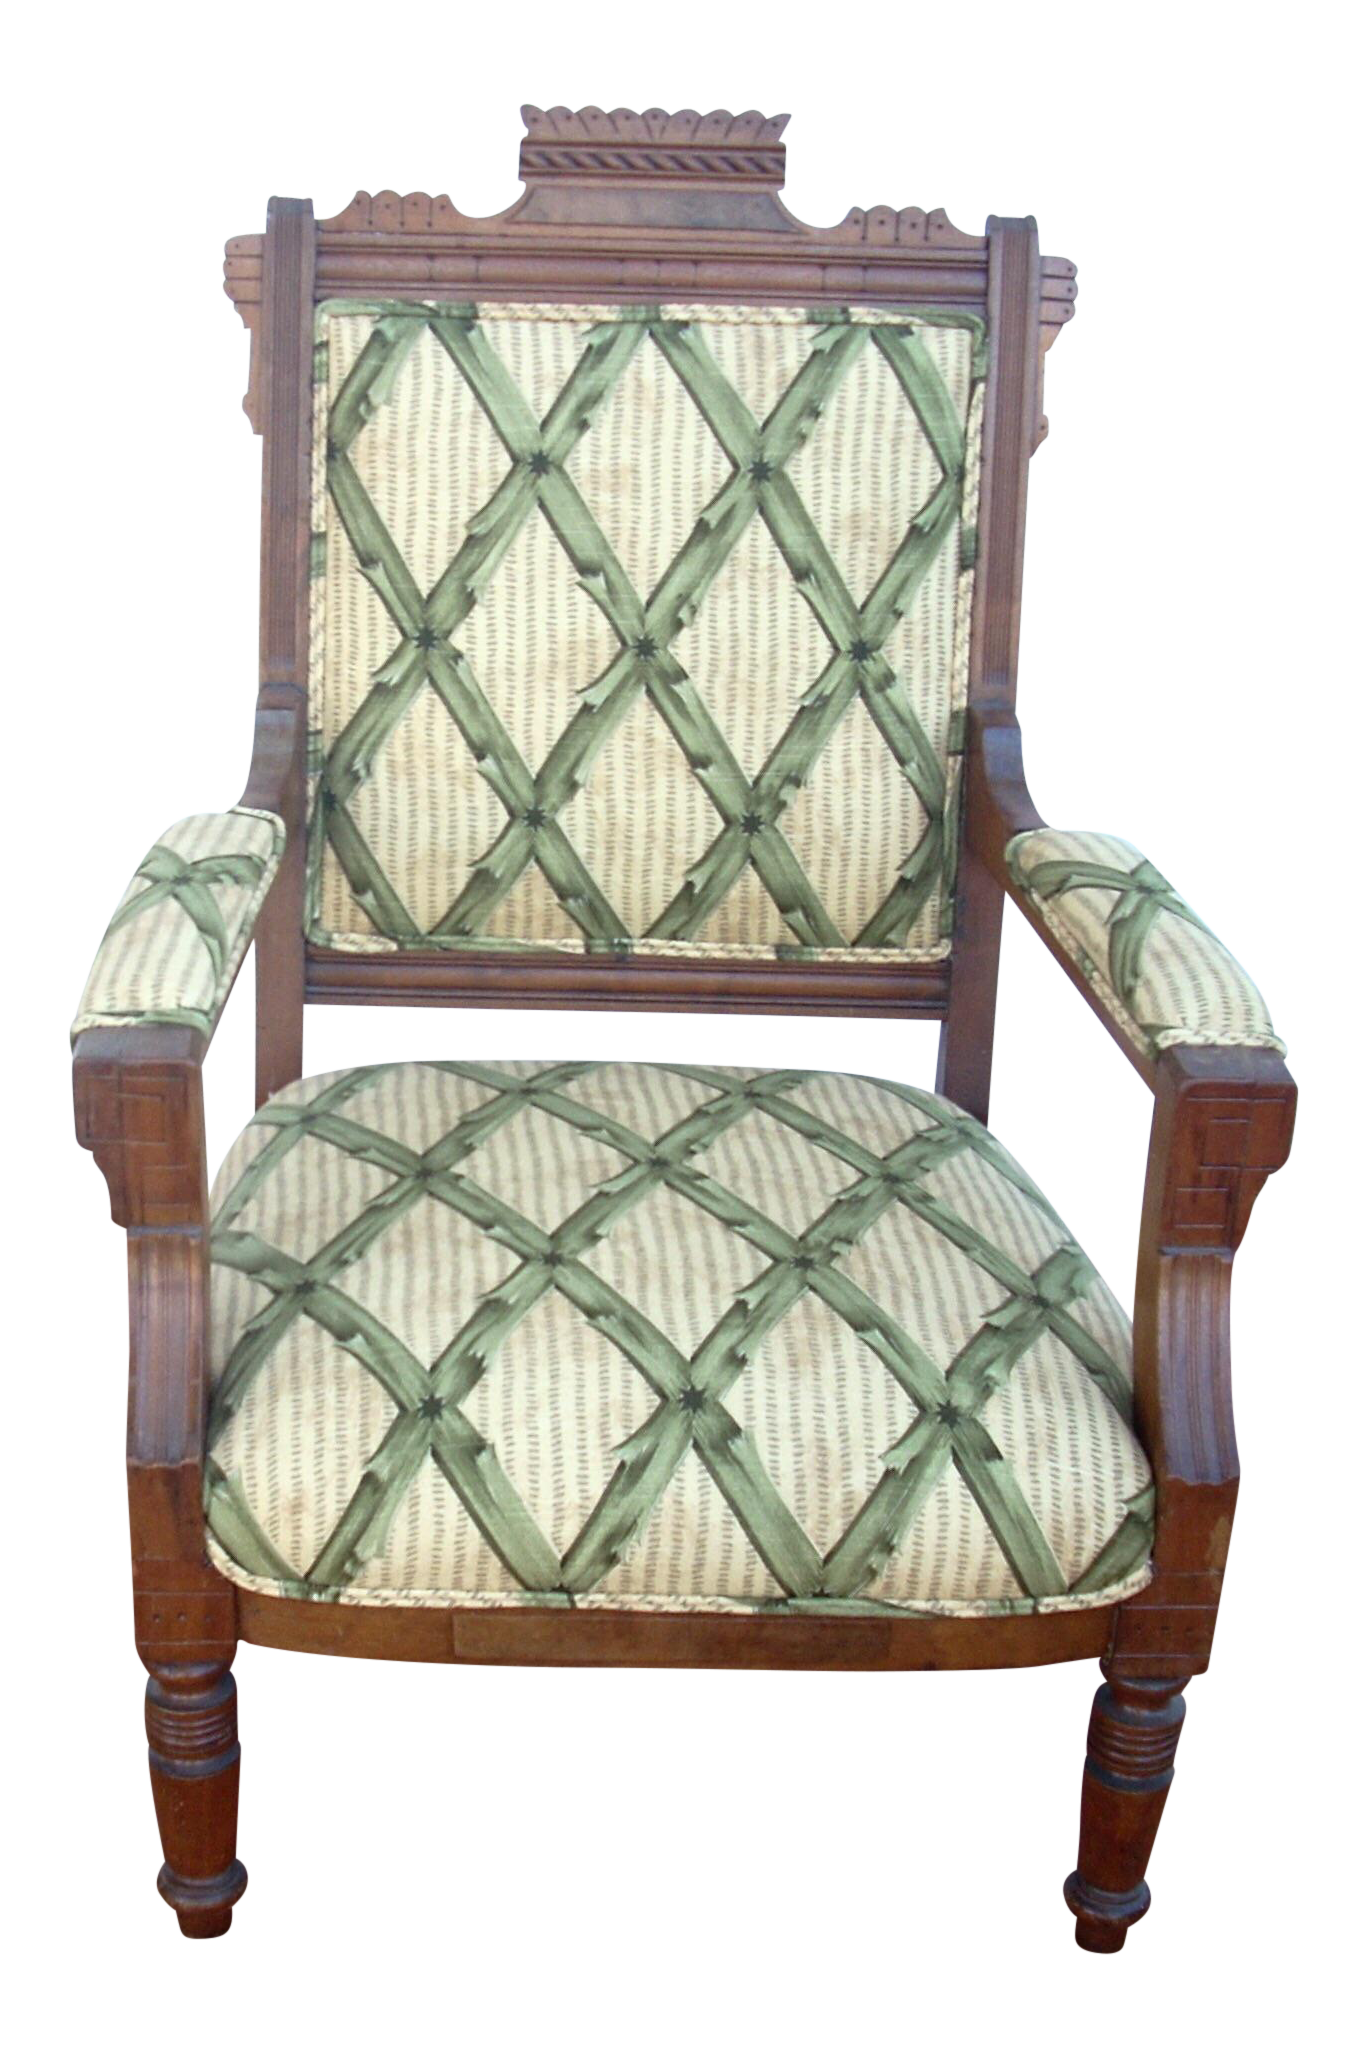 Antique upholstered chair styles - Victorian Eastlake Style Upholstered Slipper Chair